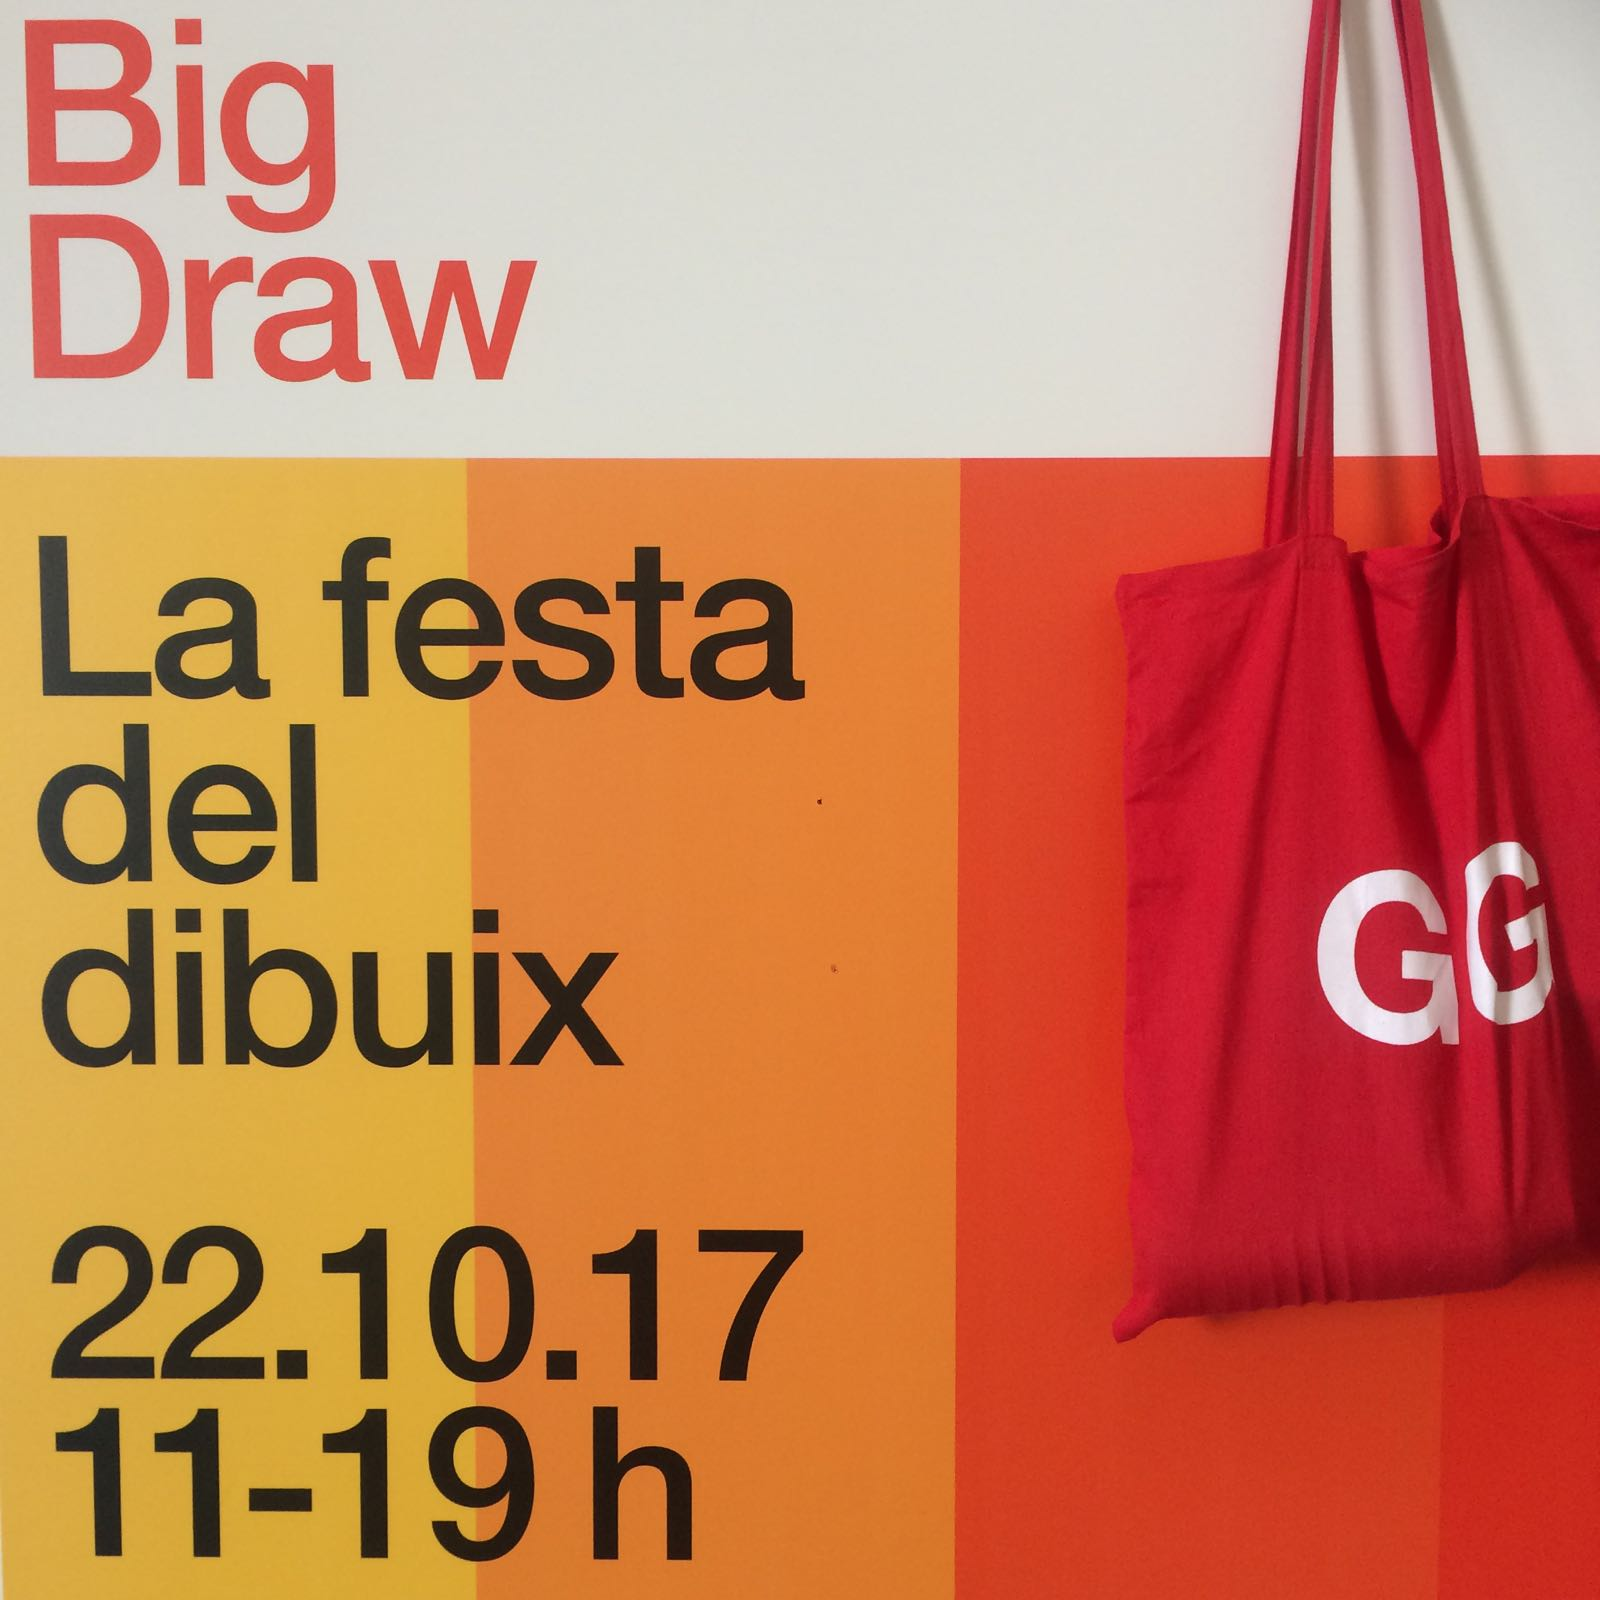 gg-big-draw-03a